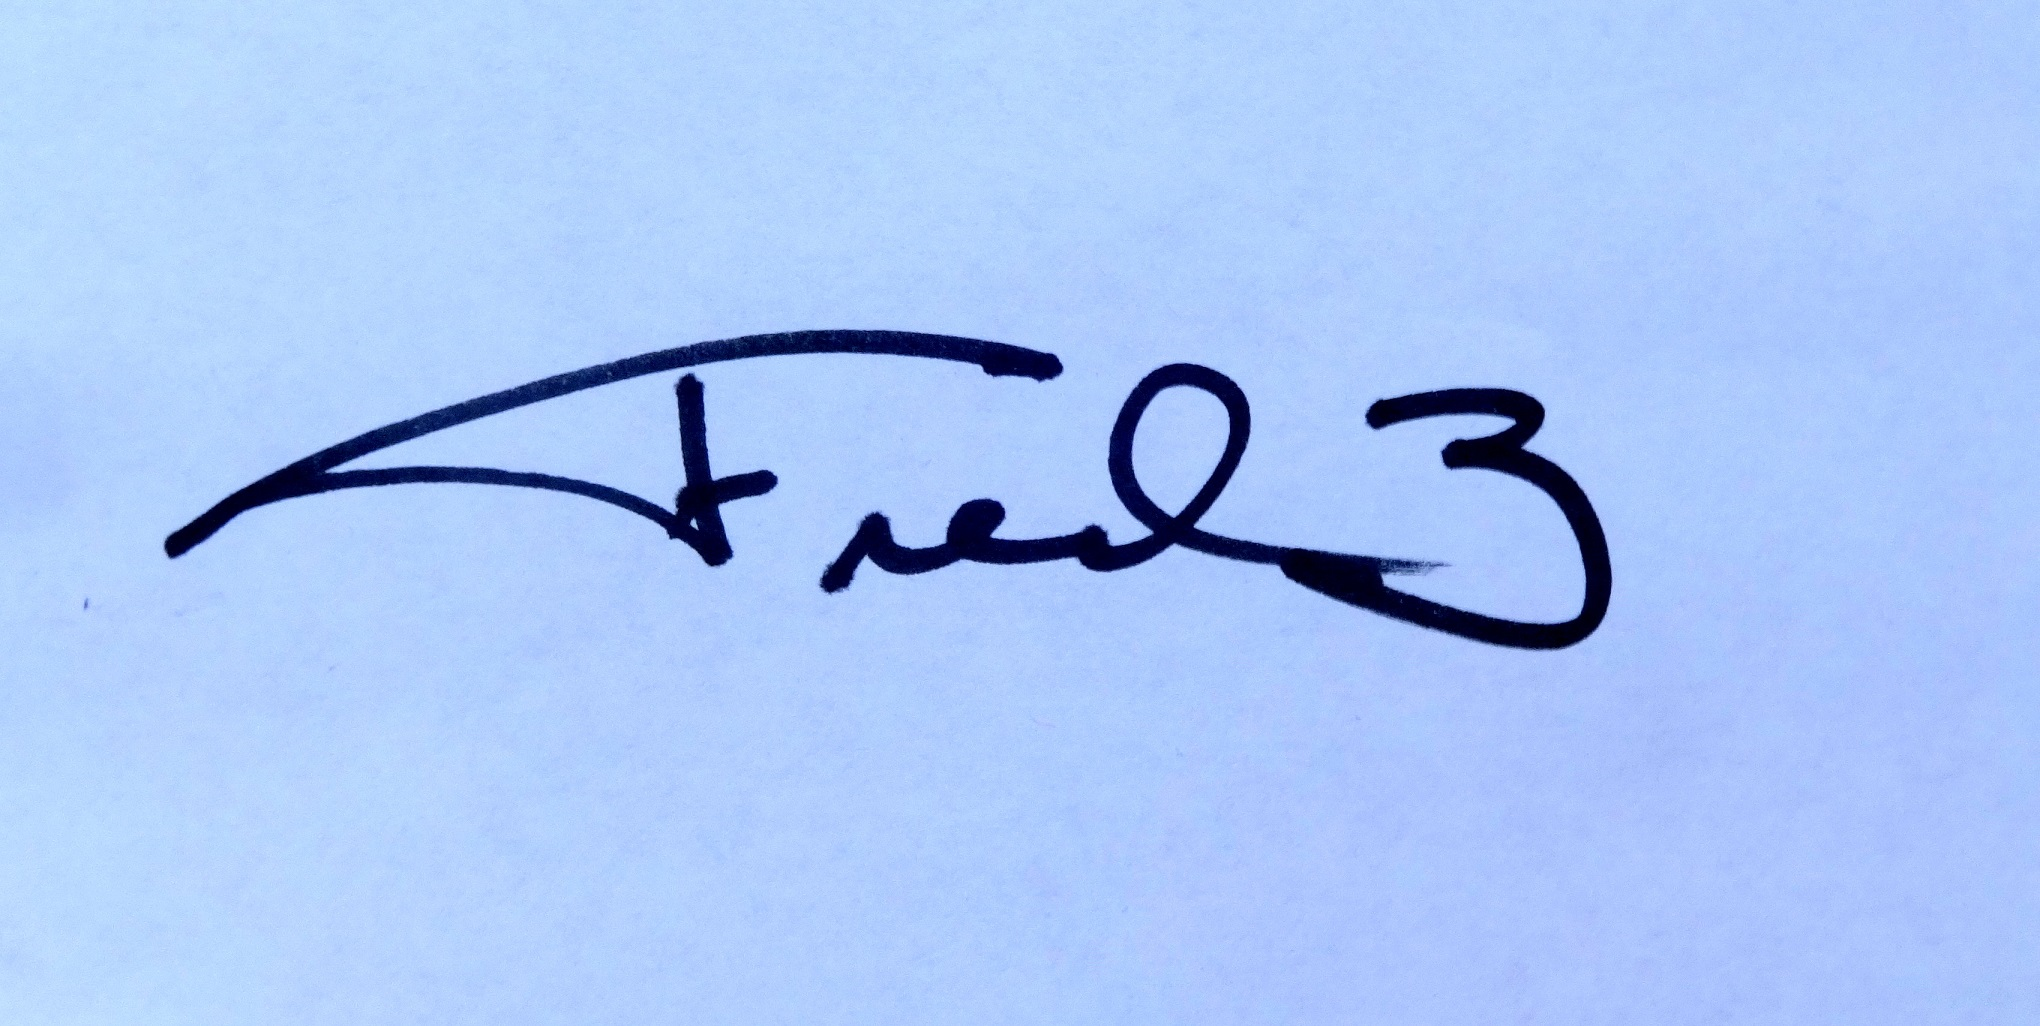 fred wilson Signature